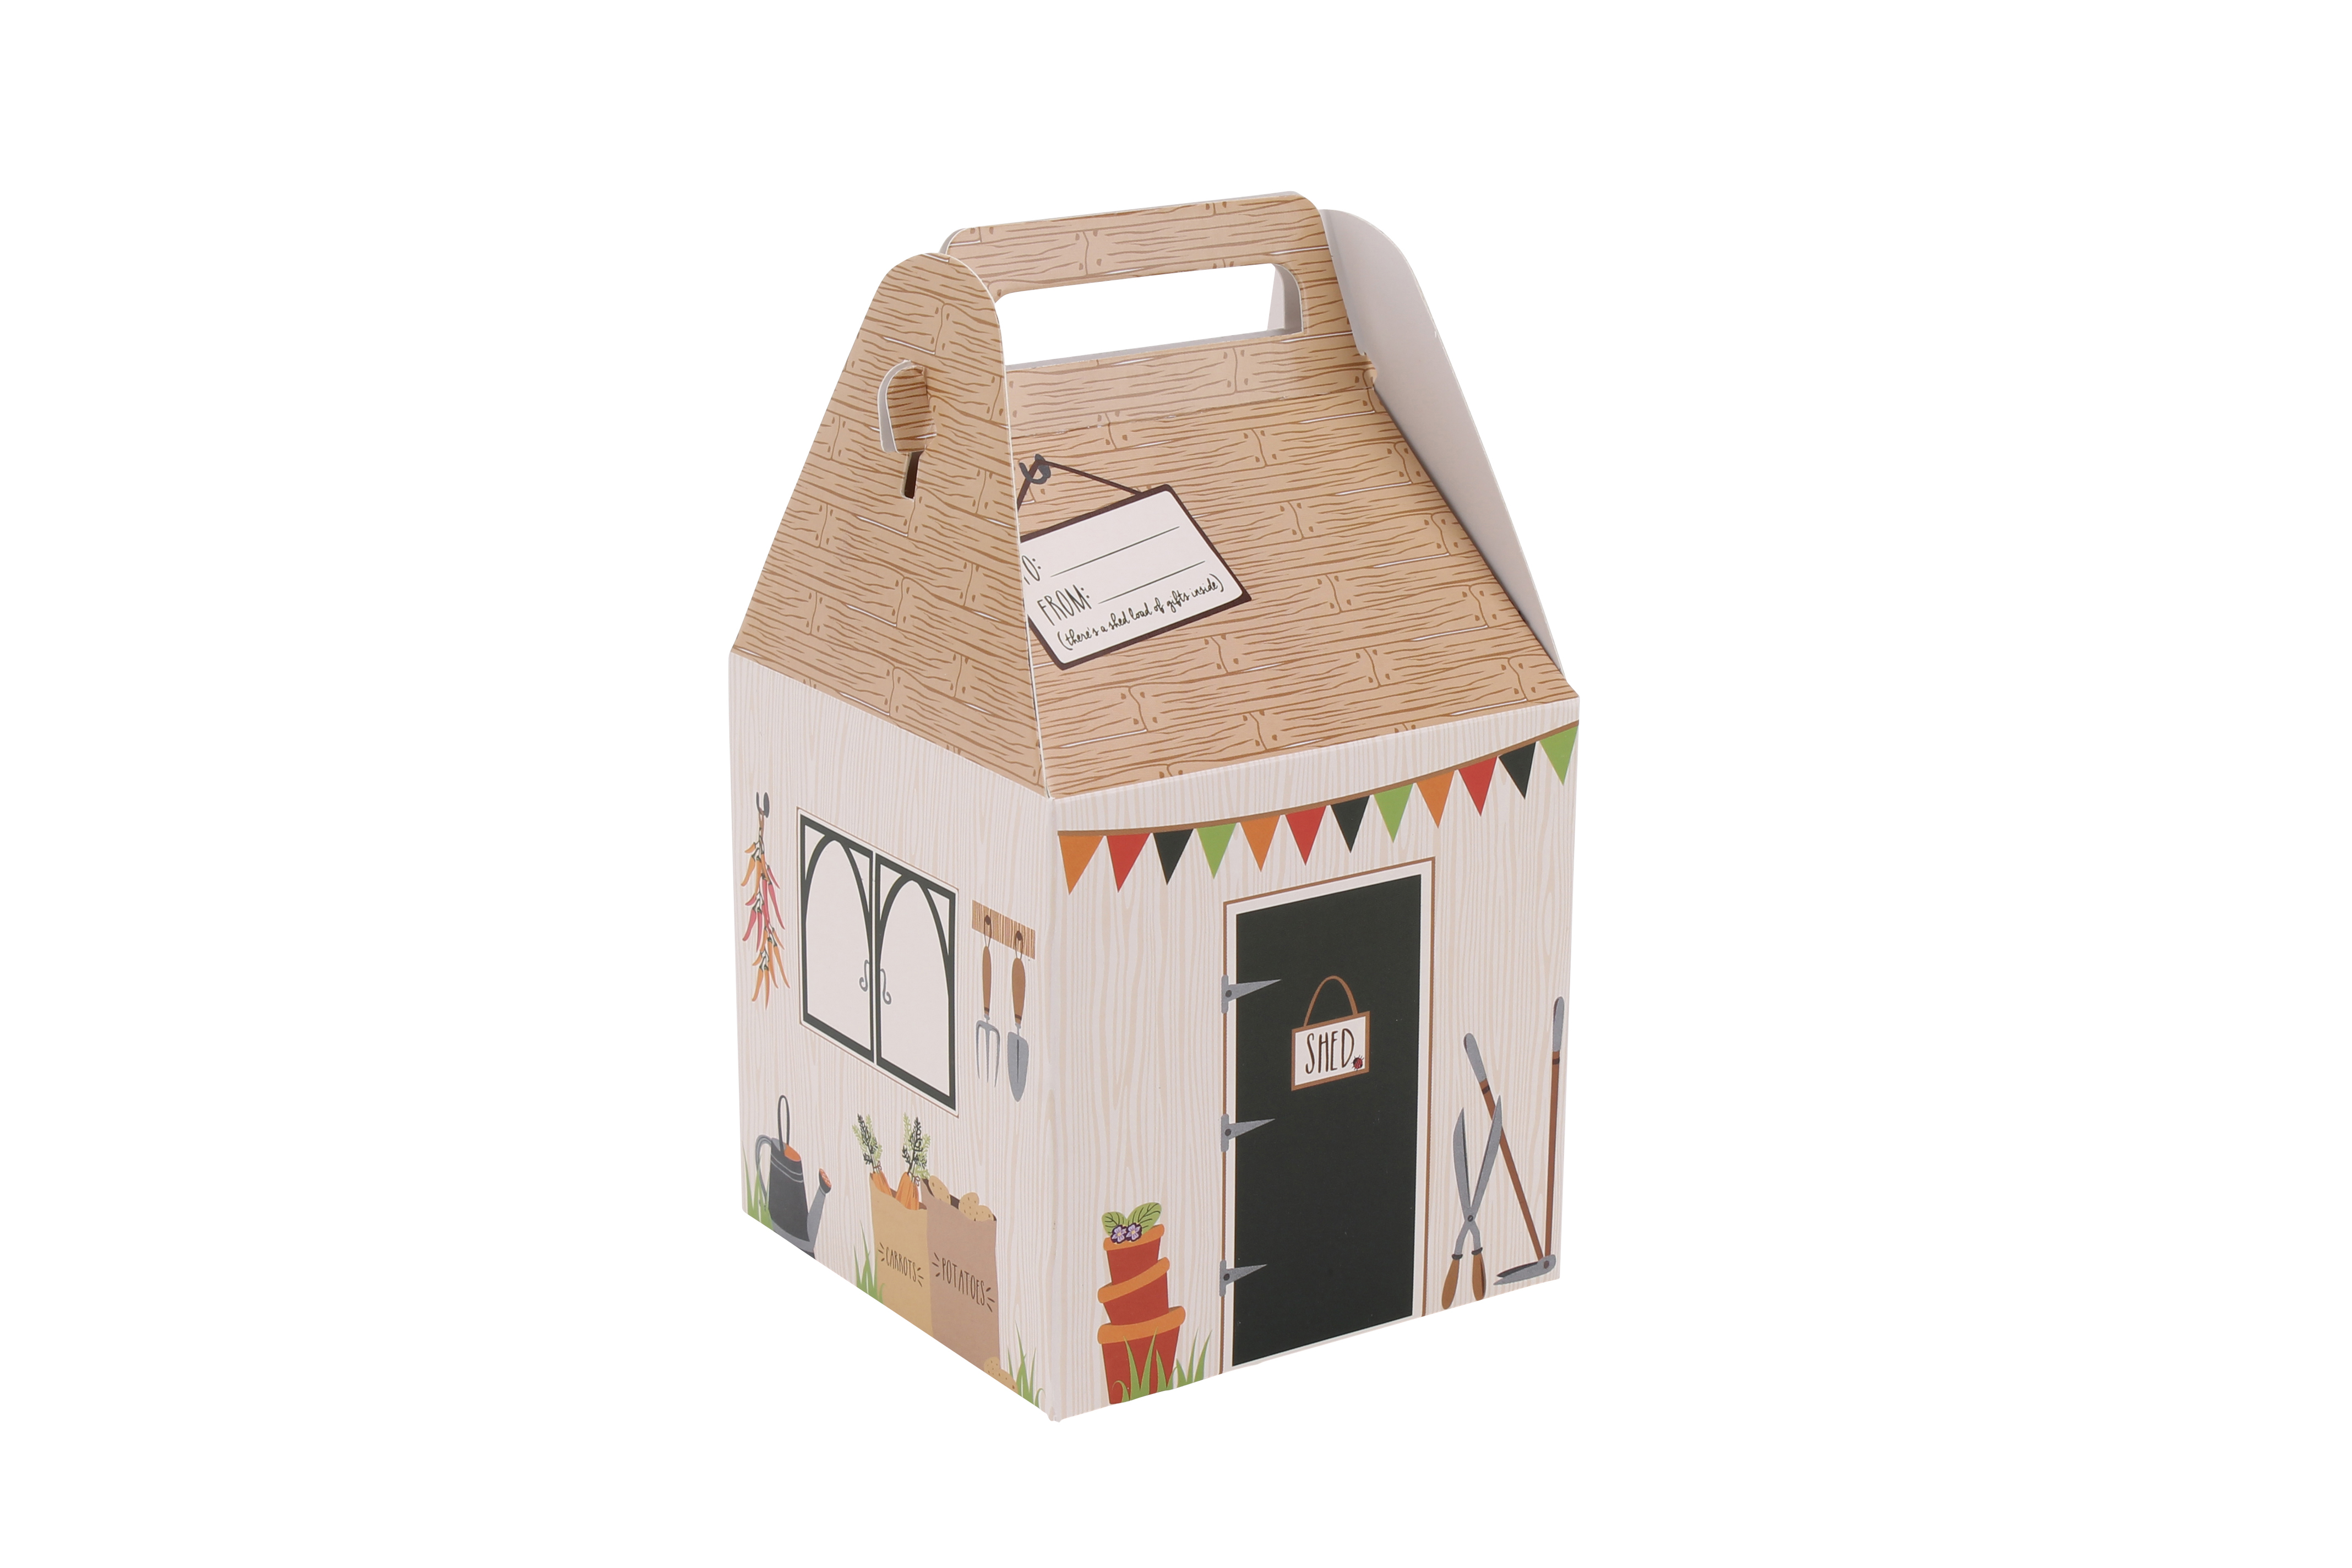 Vegetable Patch 'Shed Full Of Gifts' Small Gift Box